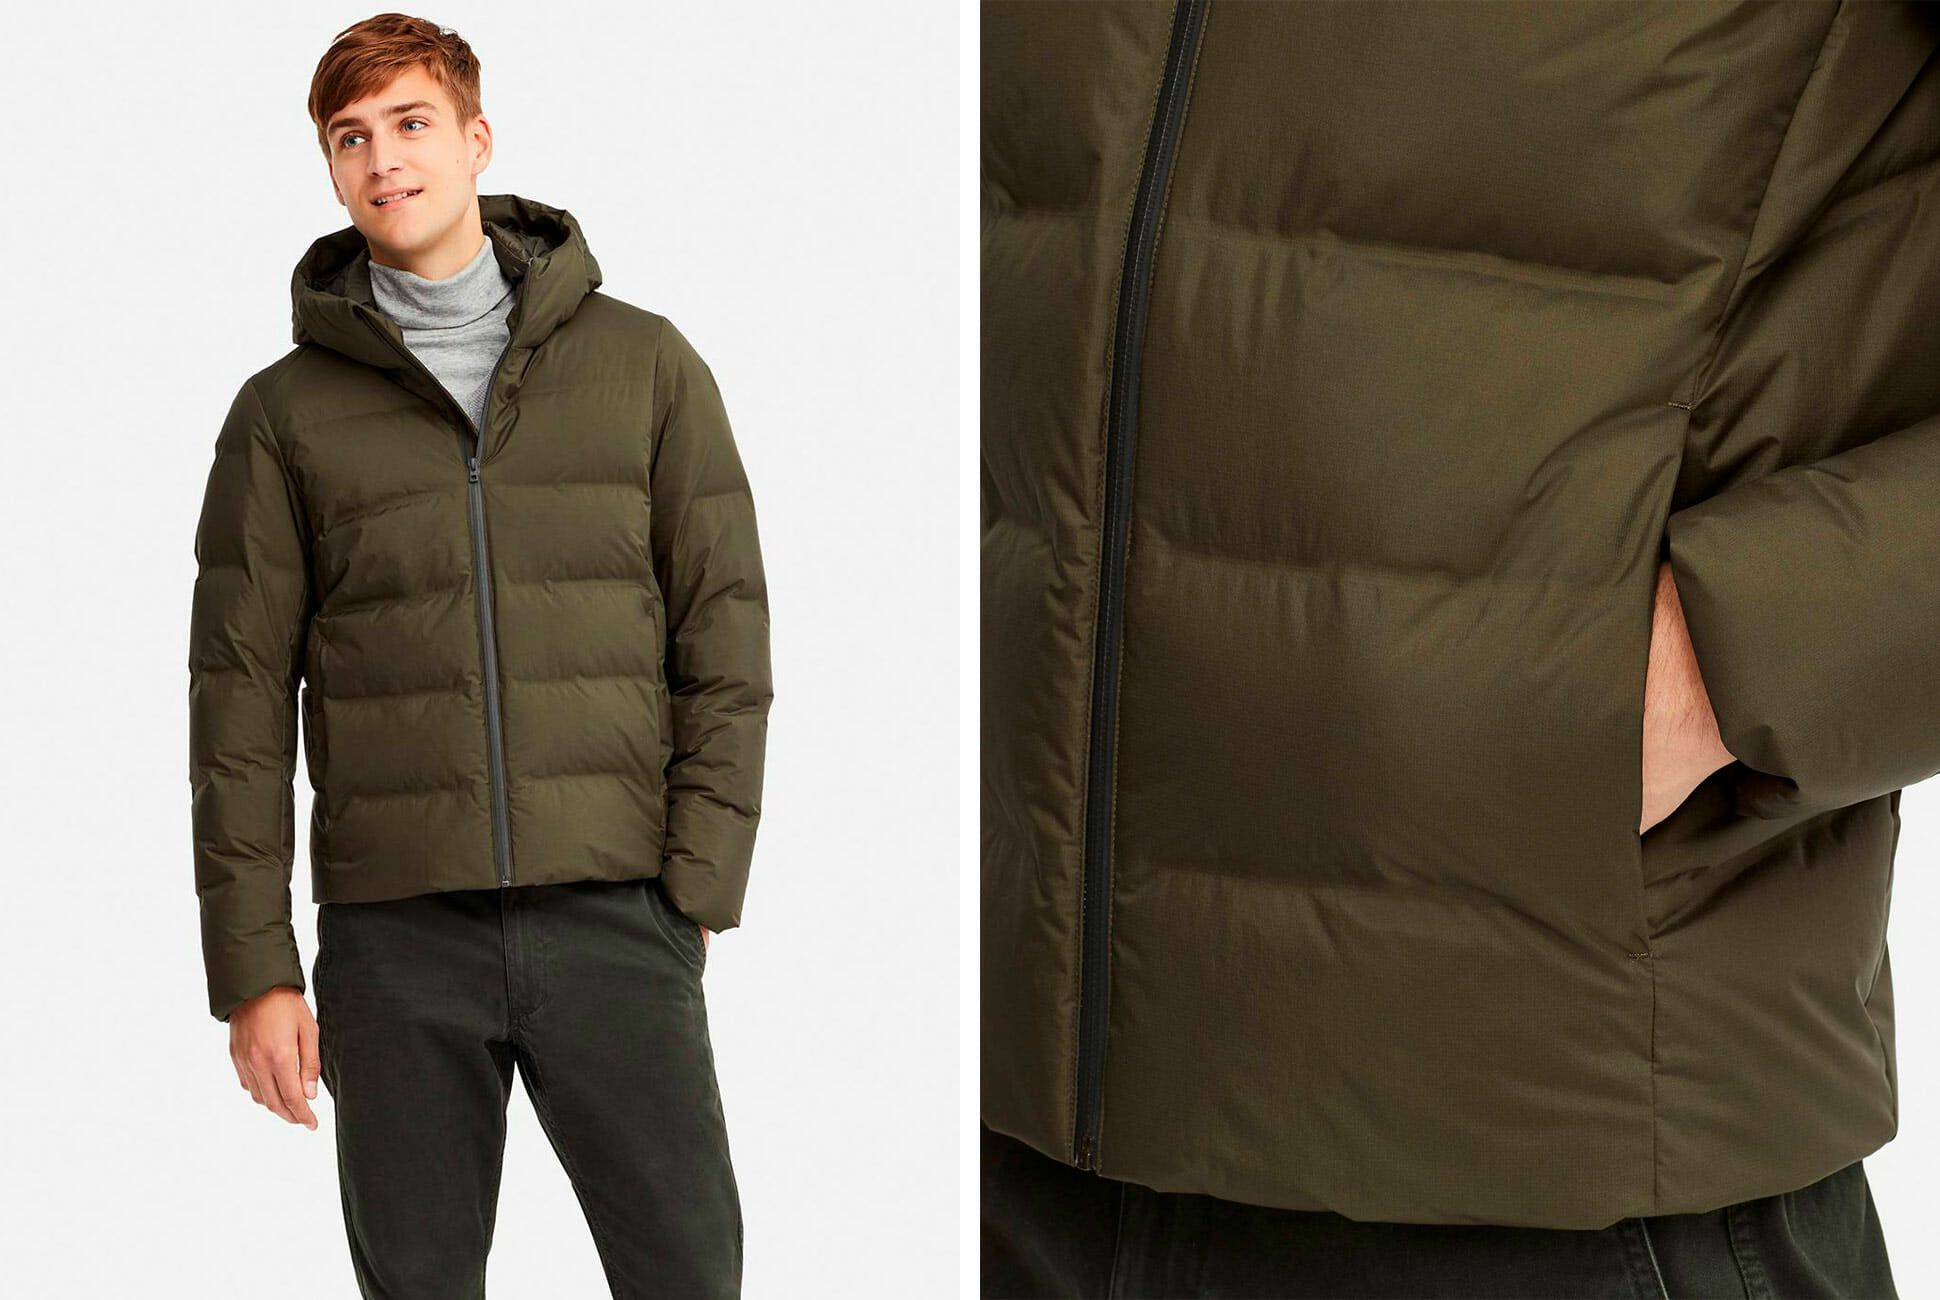 Uniqlo's $100 Down Jacket Is Actually Pretty Innovative